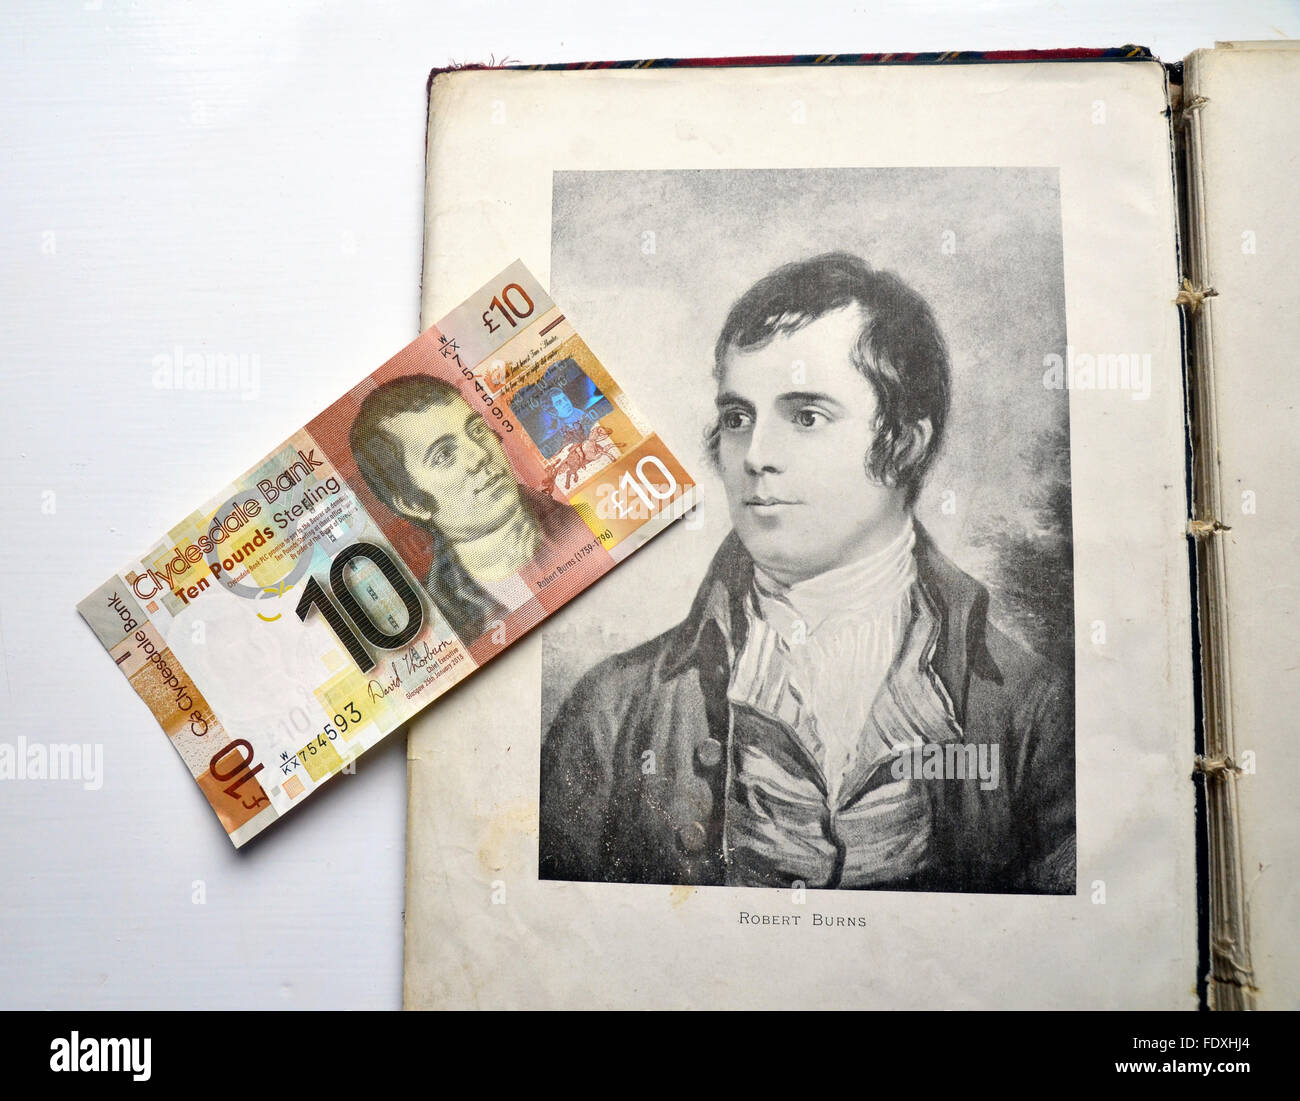 Ten pound note with portrait of Robert Burns lying on top of a portrait of him illustrated in an old book. - Stock Image